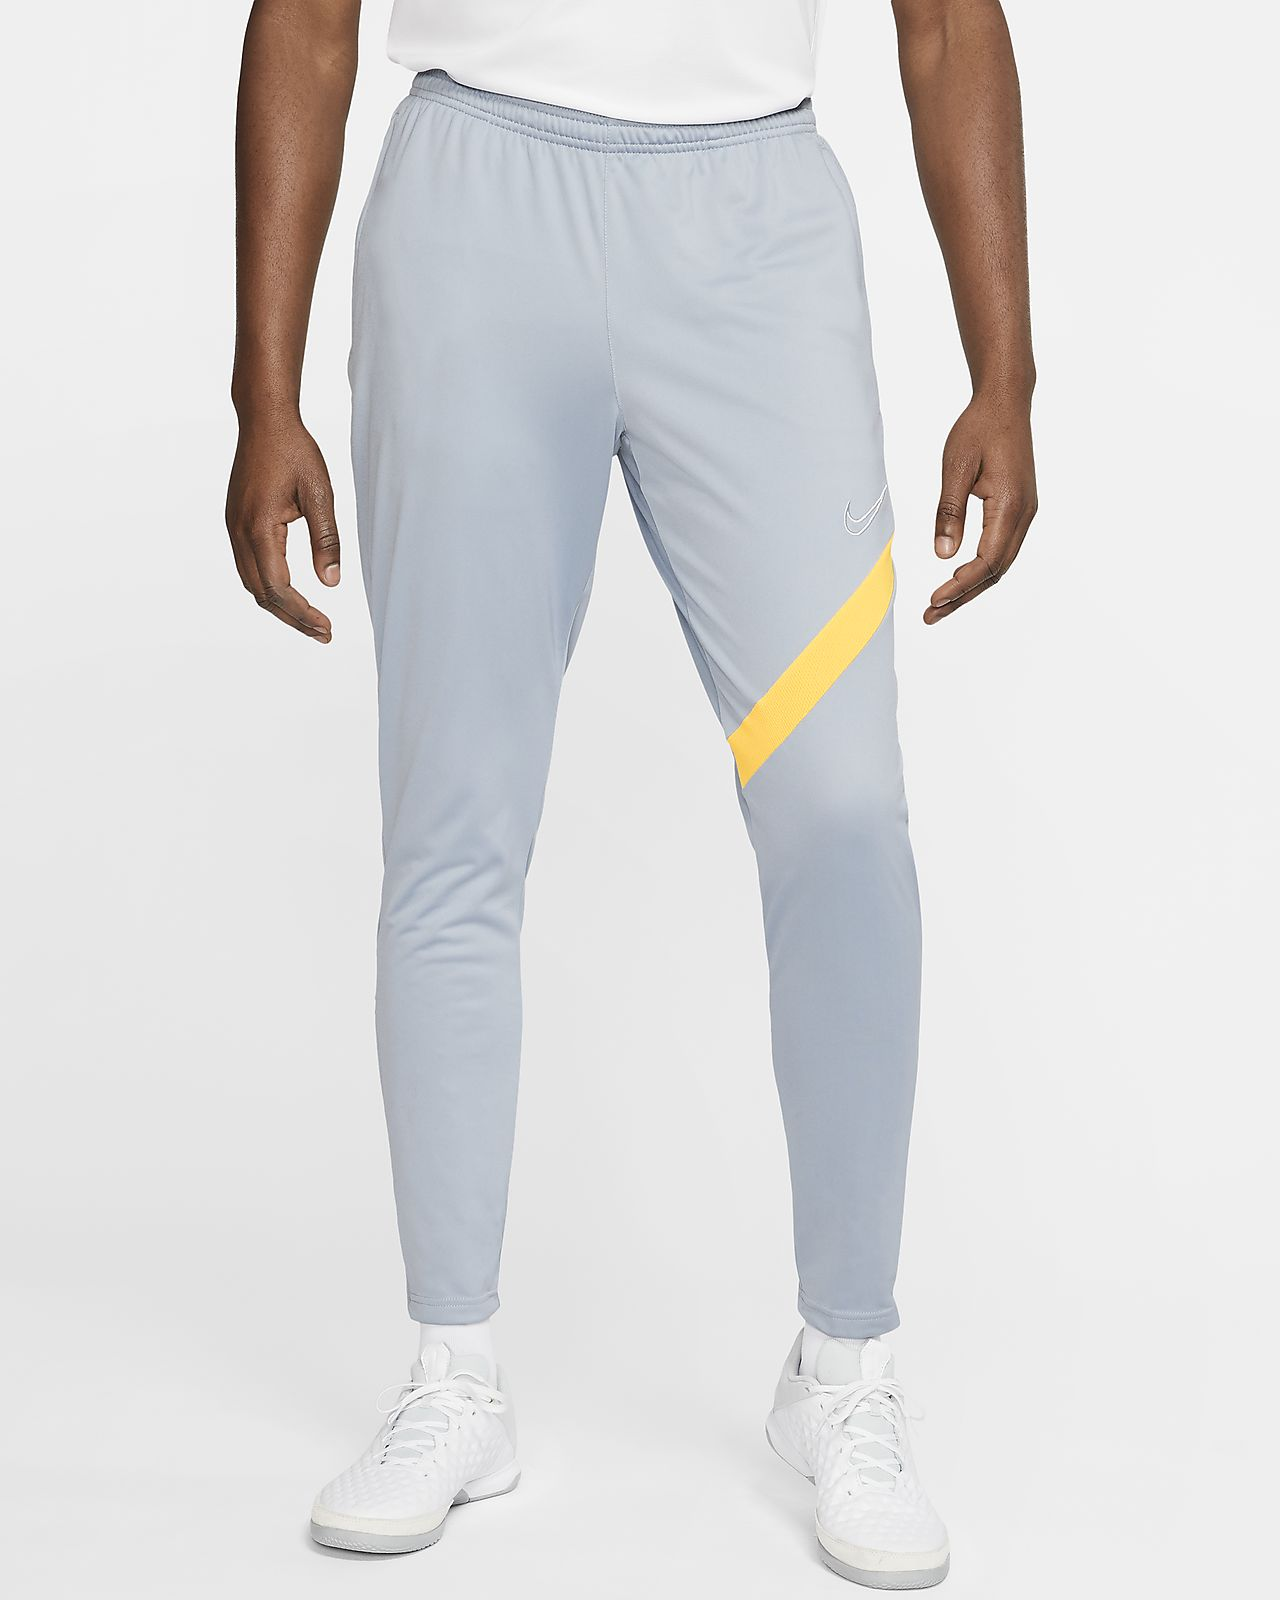 Nike Dri-FIT Academy Pro Men's Football Pants